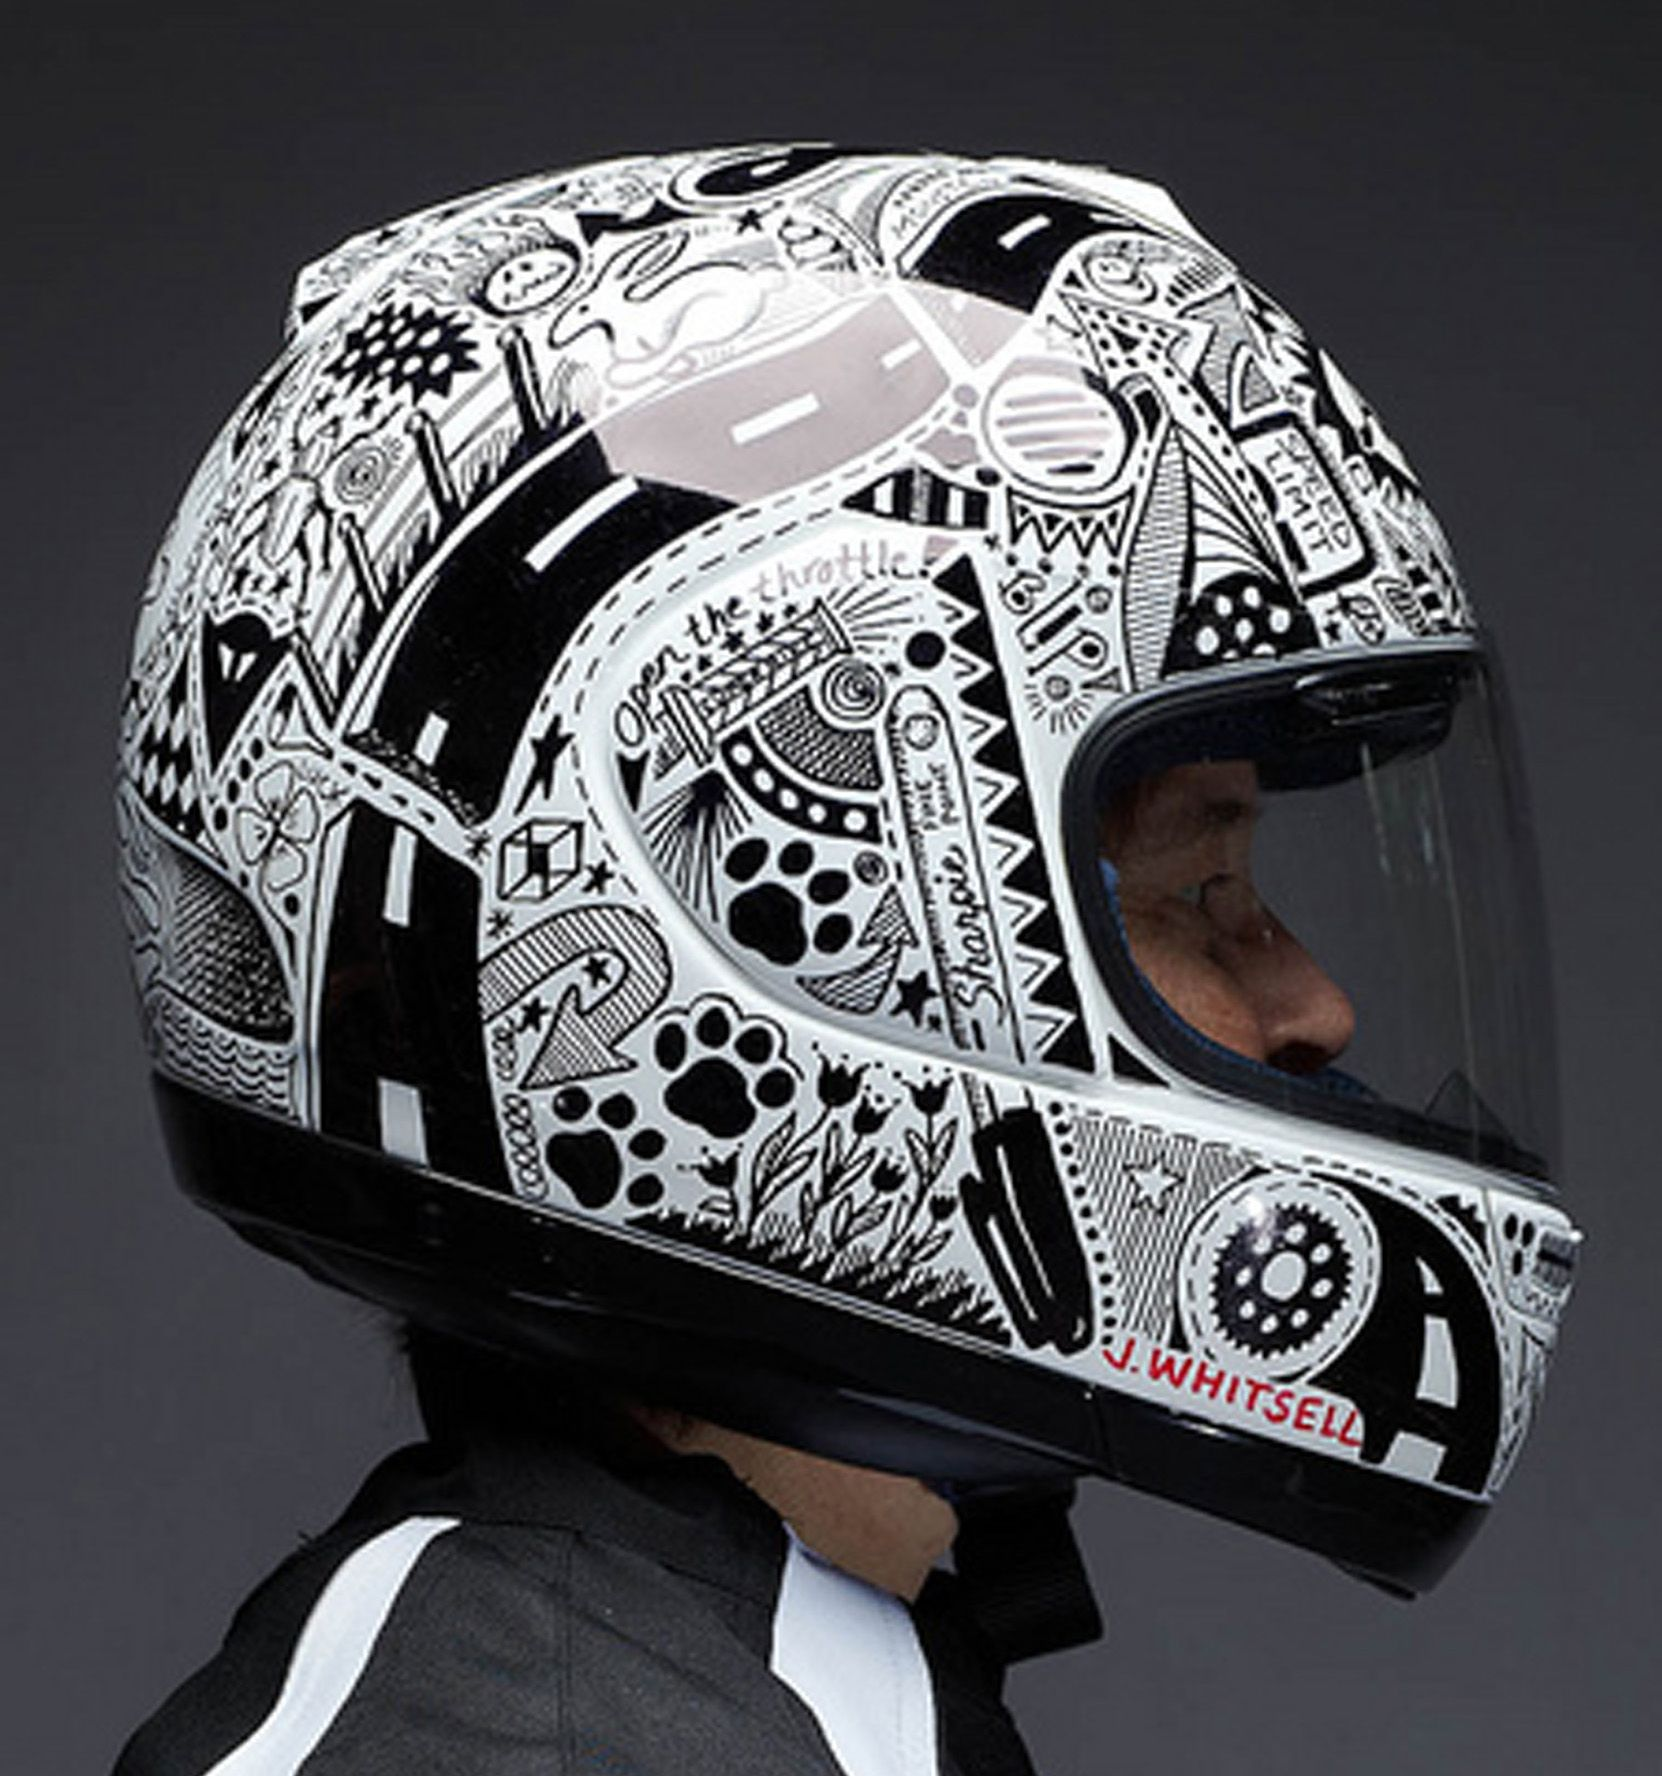 New Sharpie Page 2 Custom Motorcycle Paint Jobs Motorcycle Helmet Design Bike Helmet Design